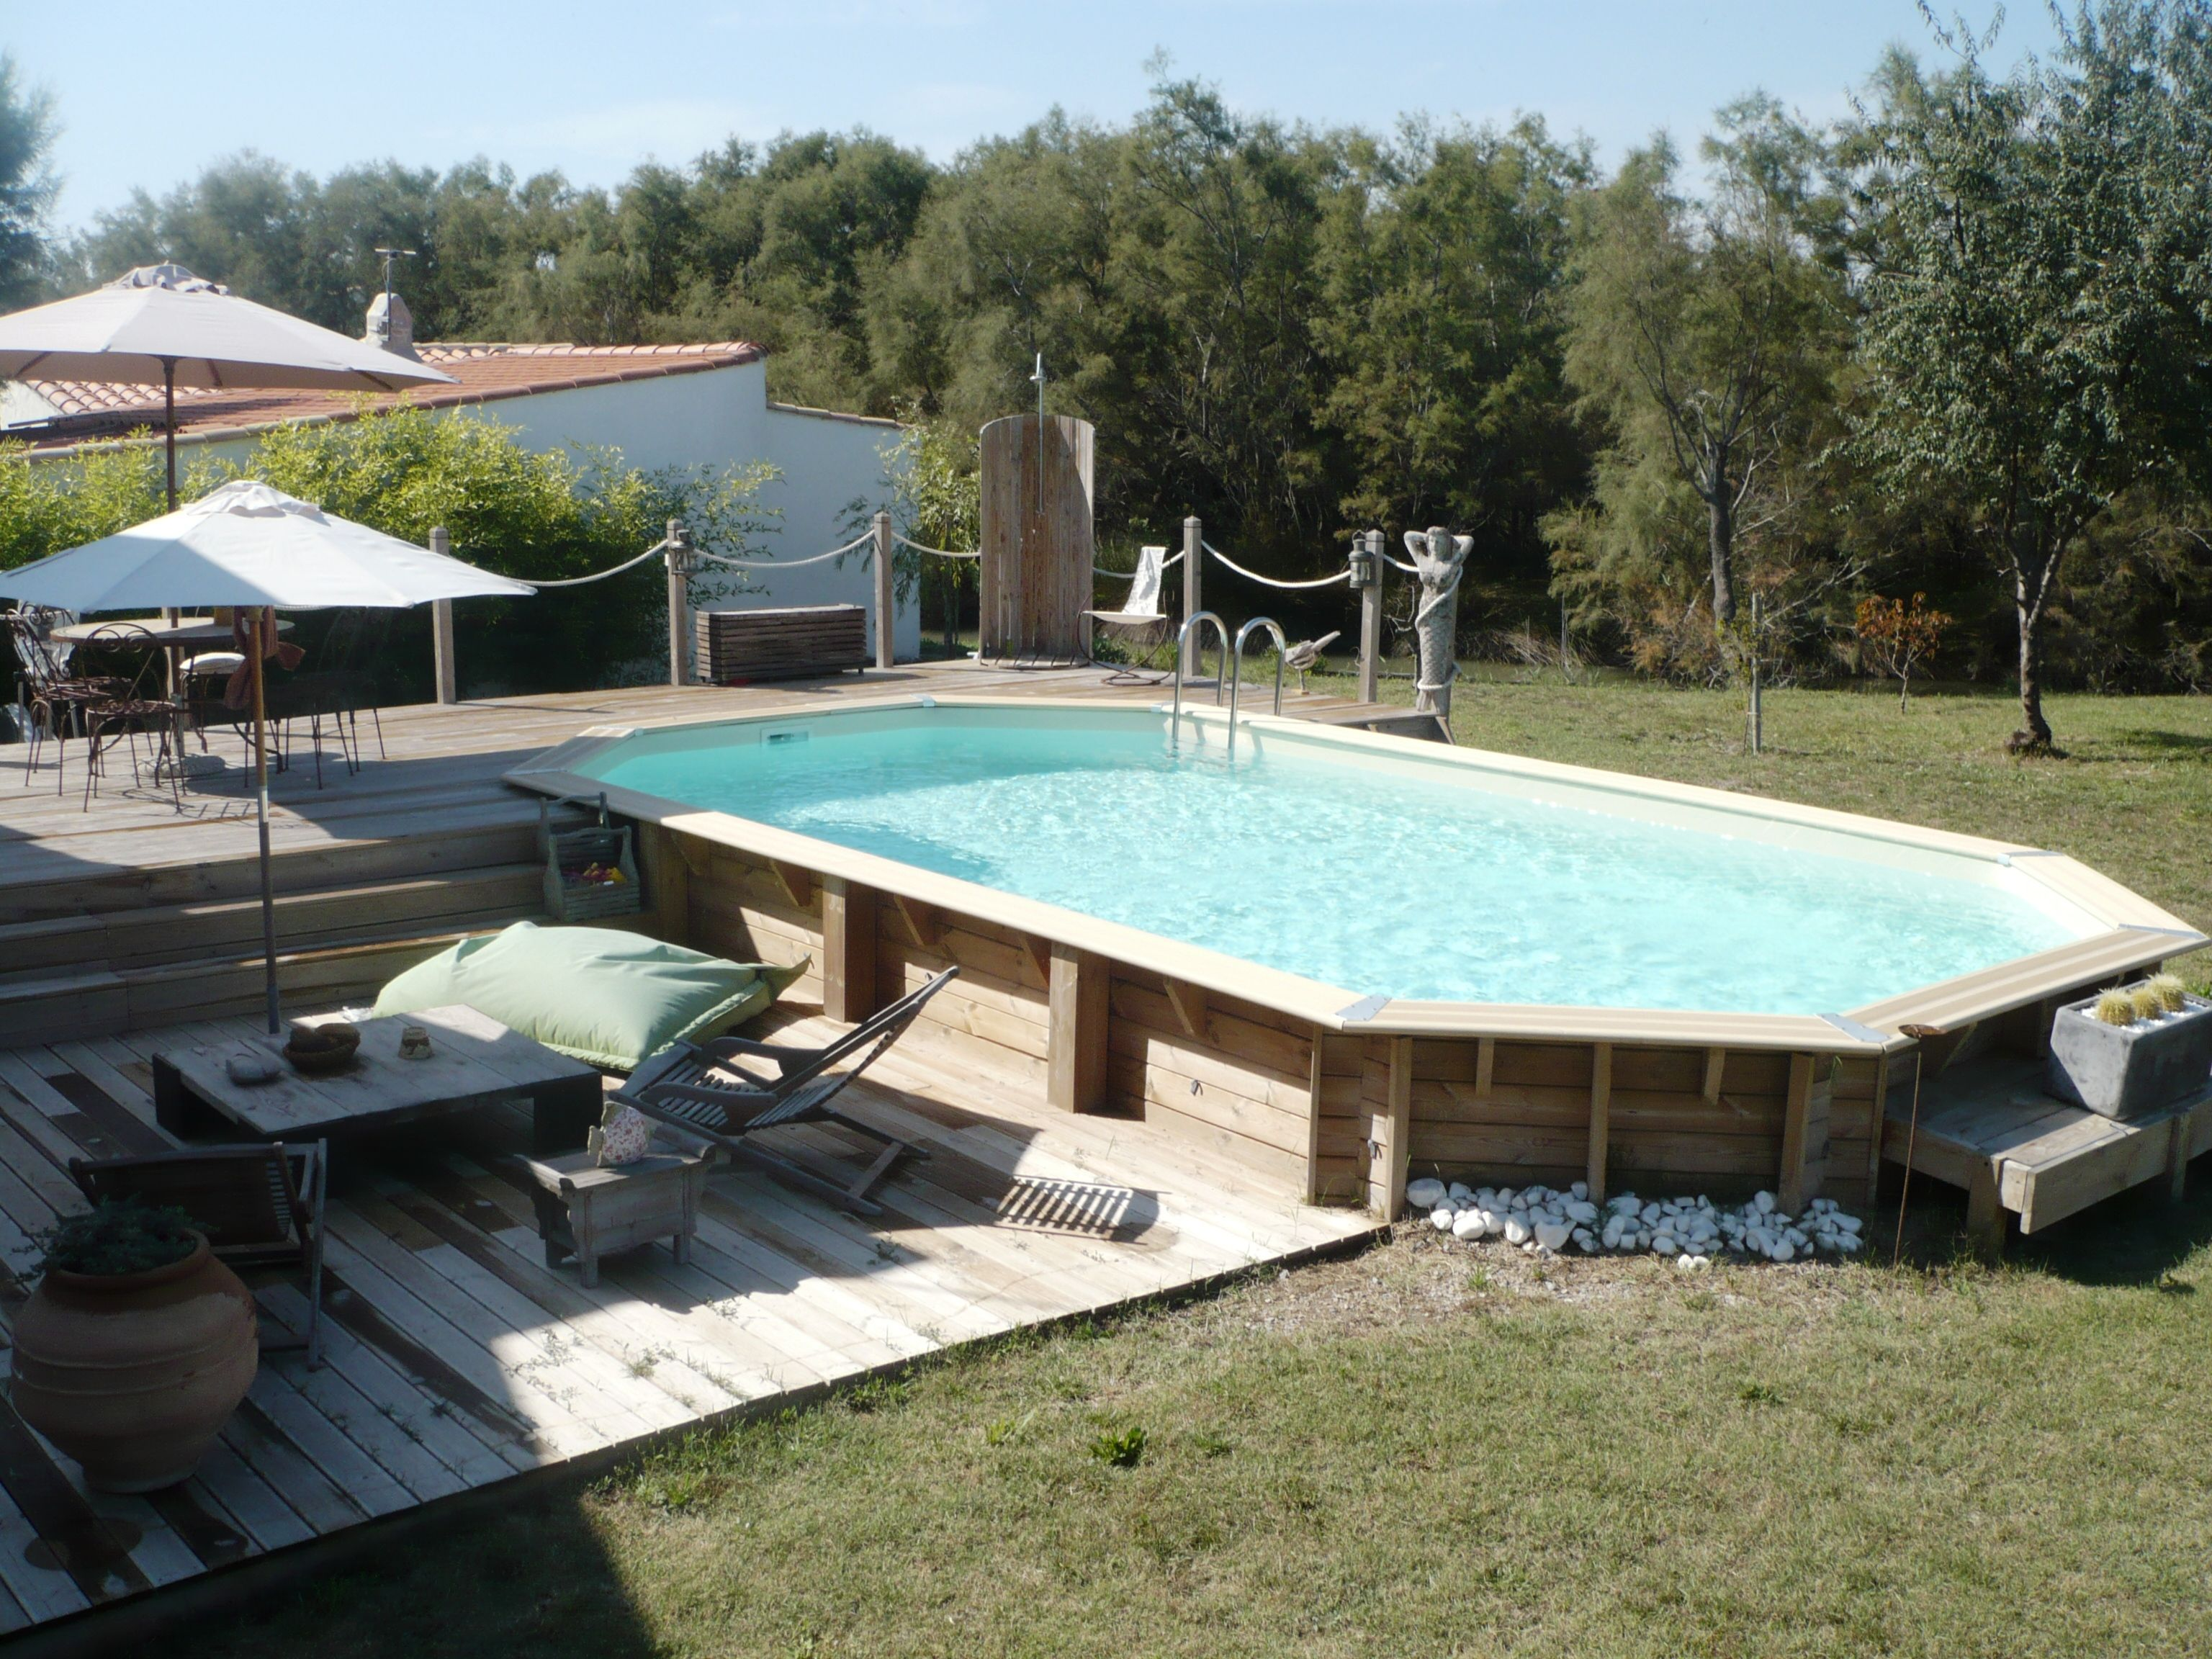 Piscine hors sol en bois semi enterr e avec sa terrasse et for Amenagement piscine hors sol photo